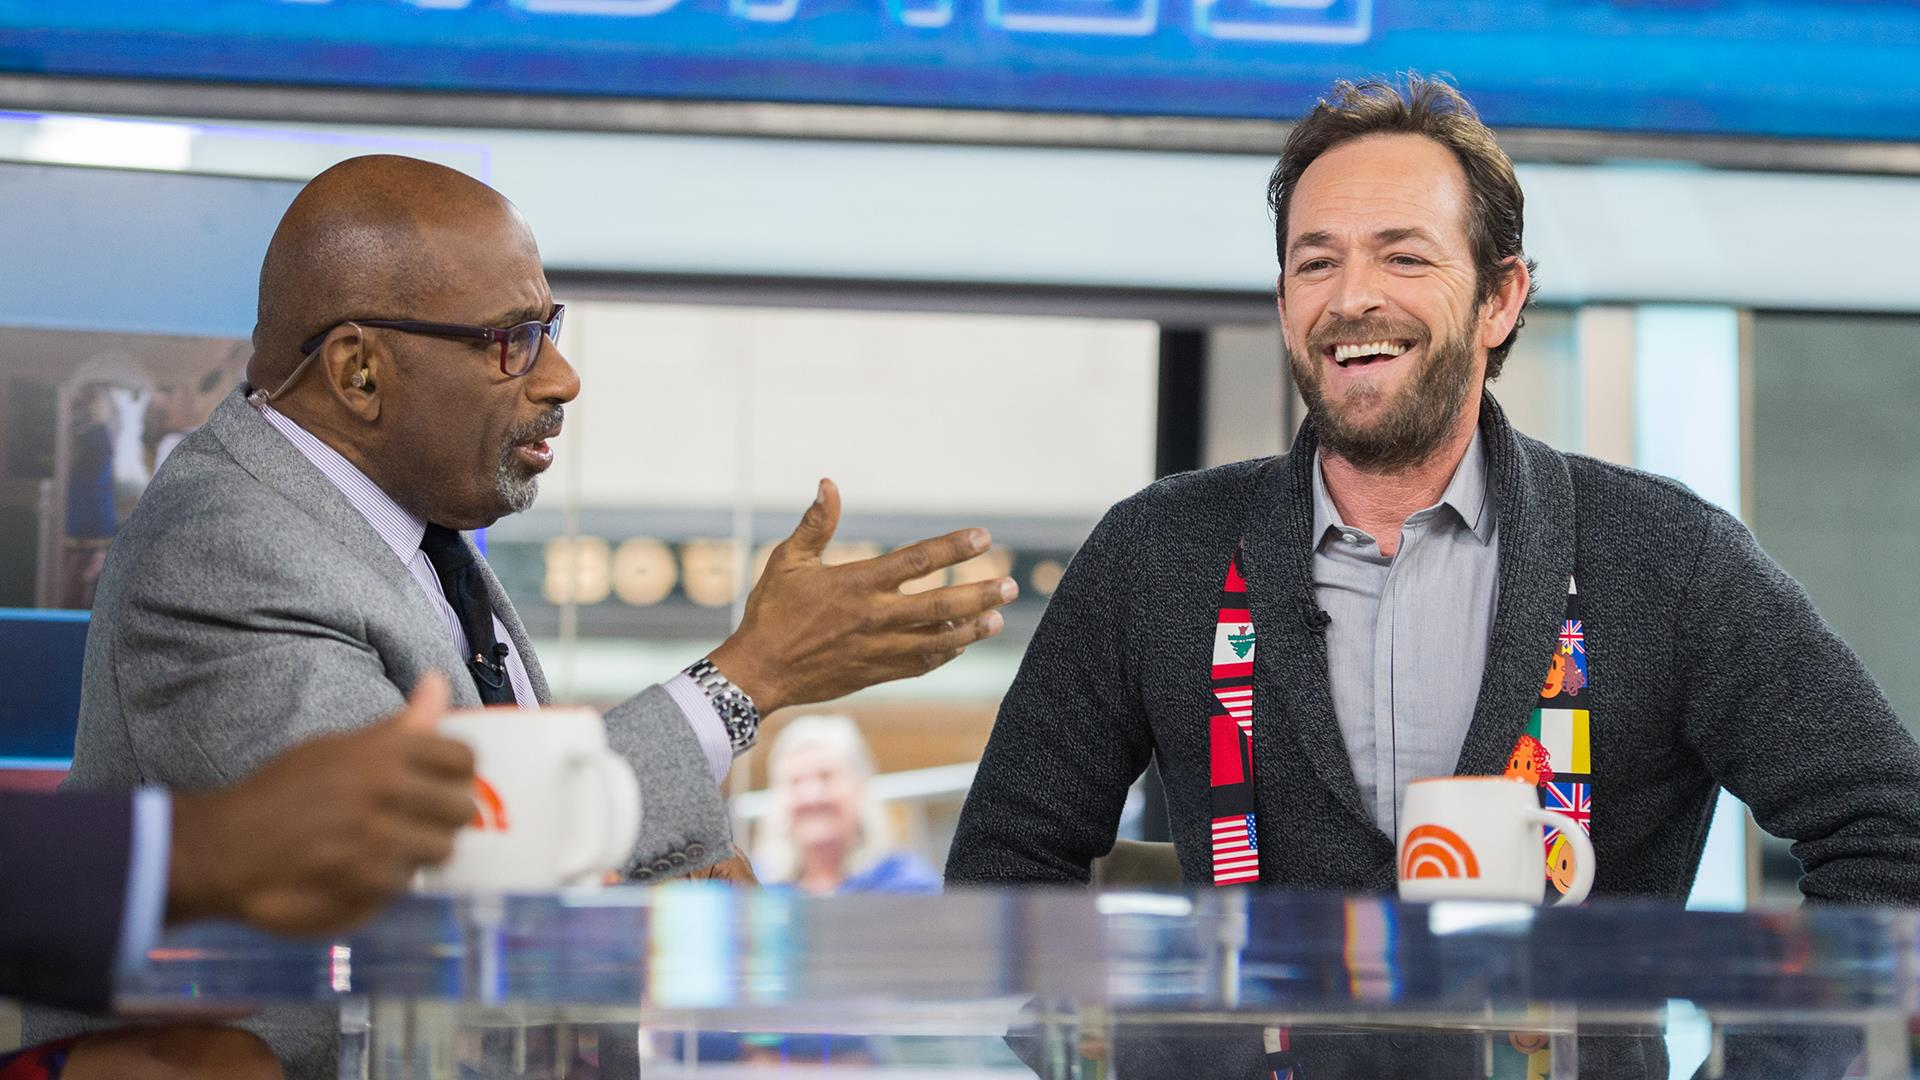 Luke Perry's ready for the Dylan 'do again: 'I'd like to go